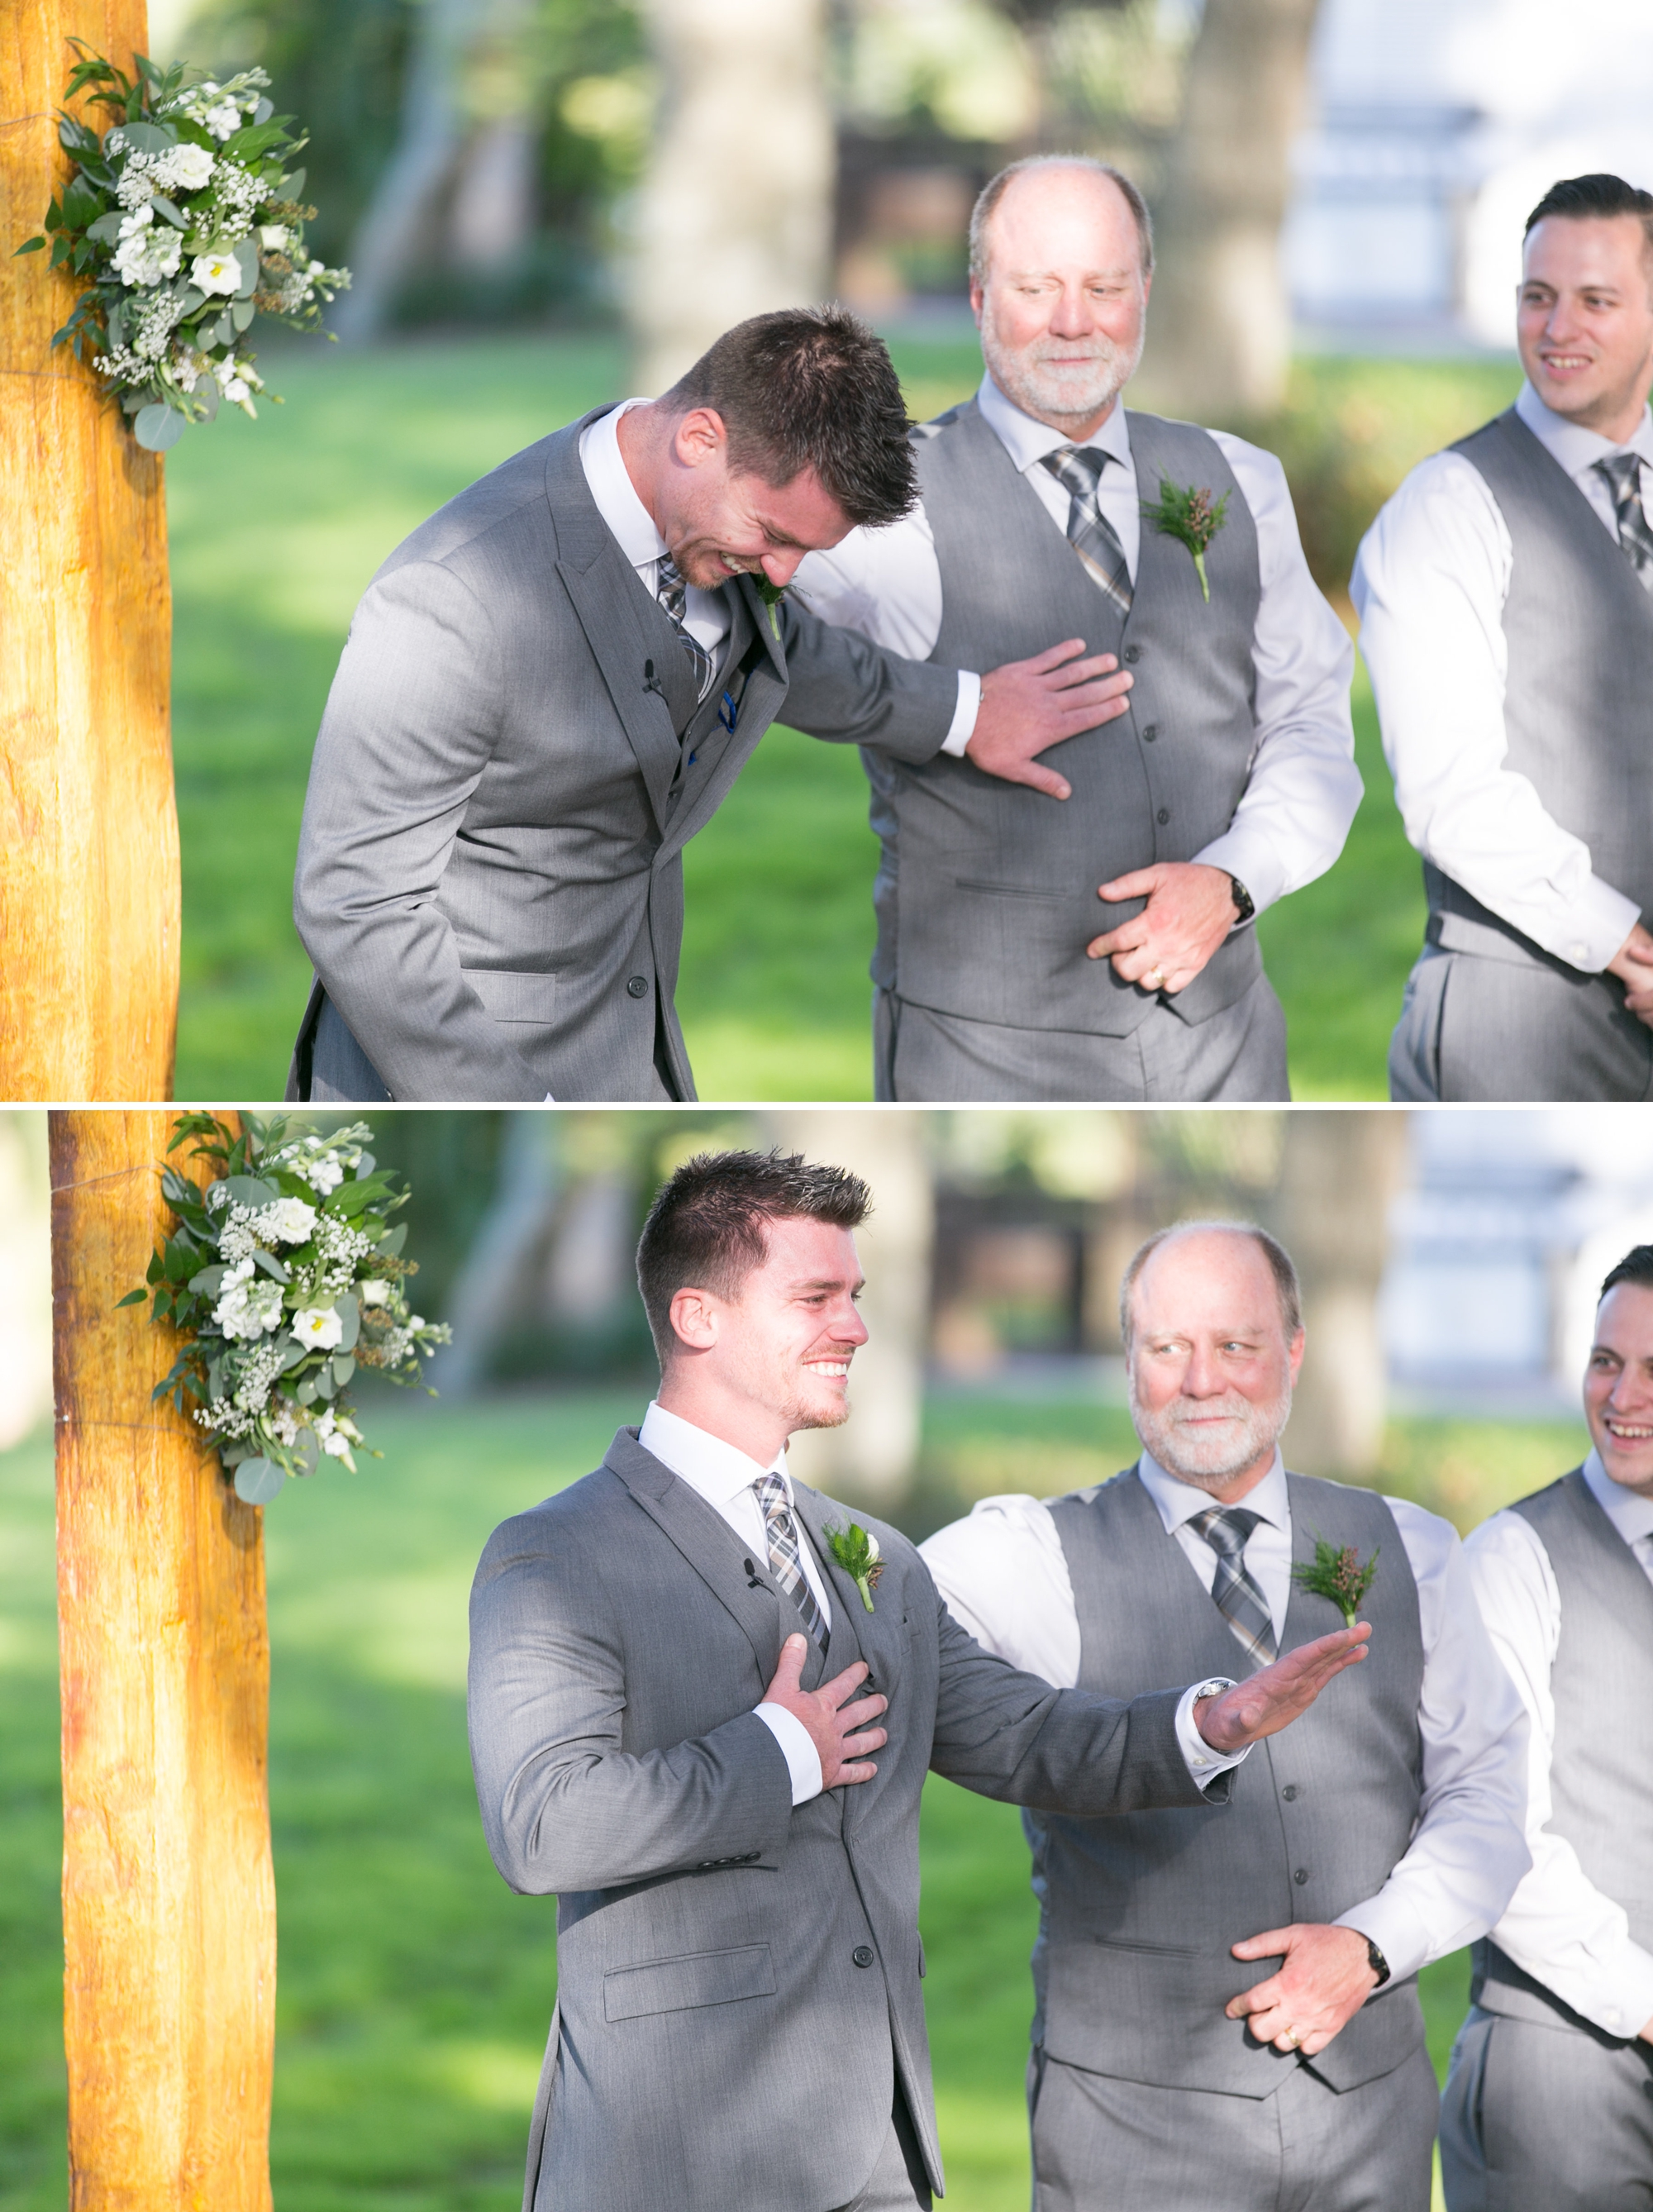 groom reaction to bride walking down aisle